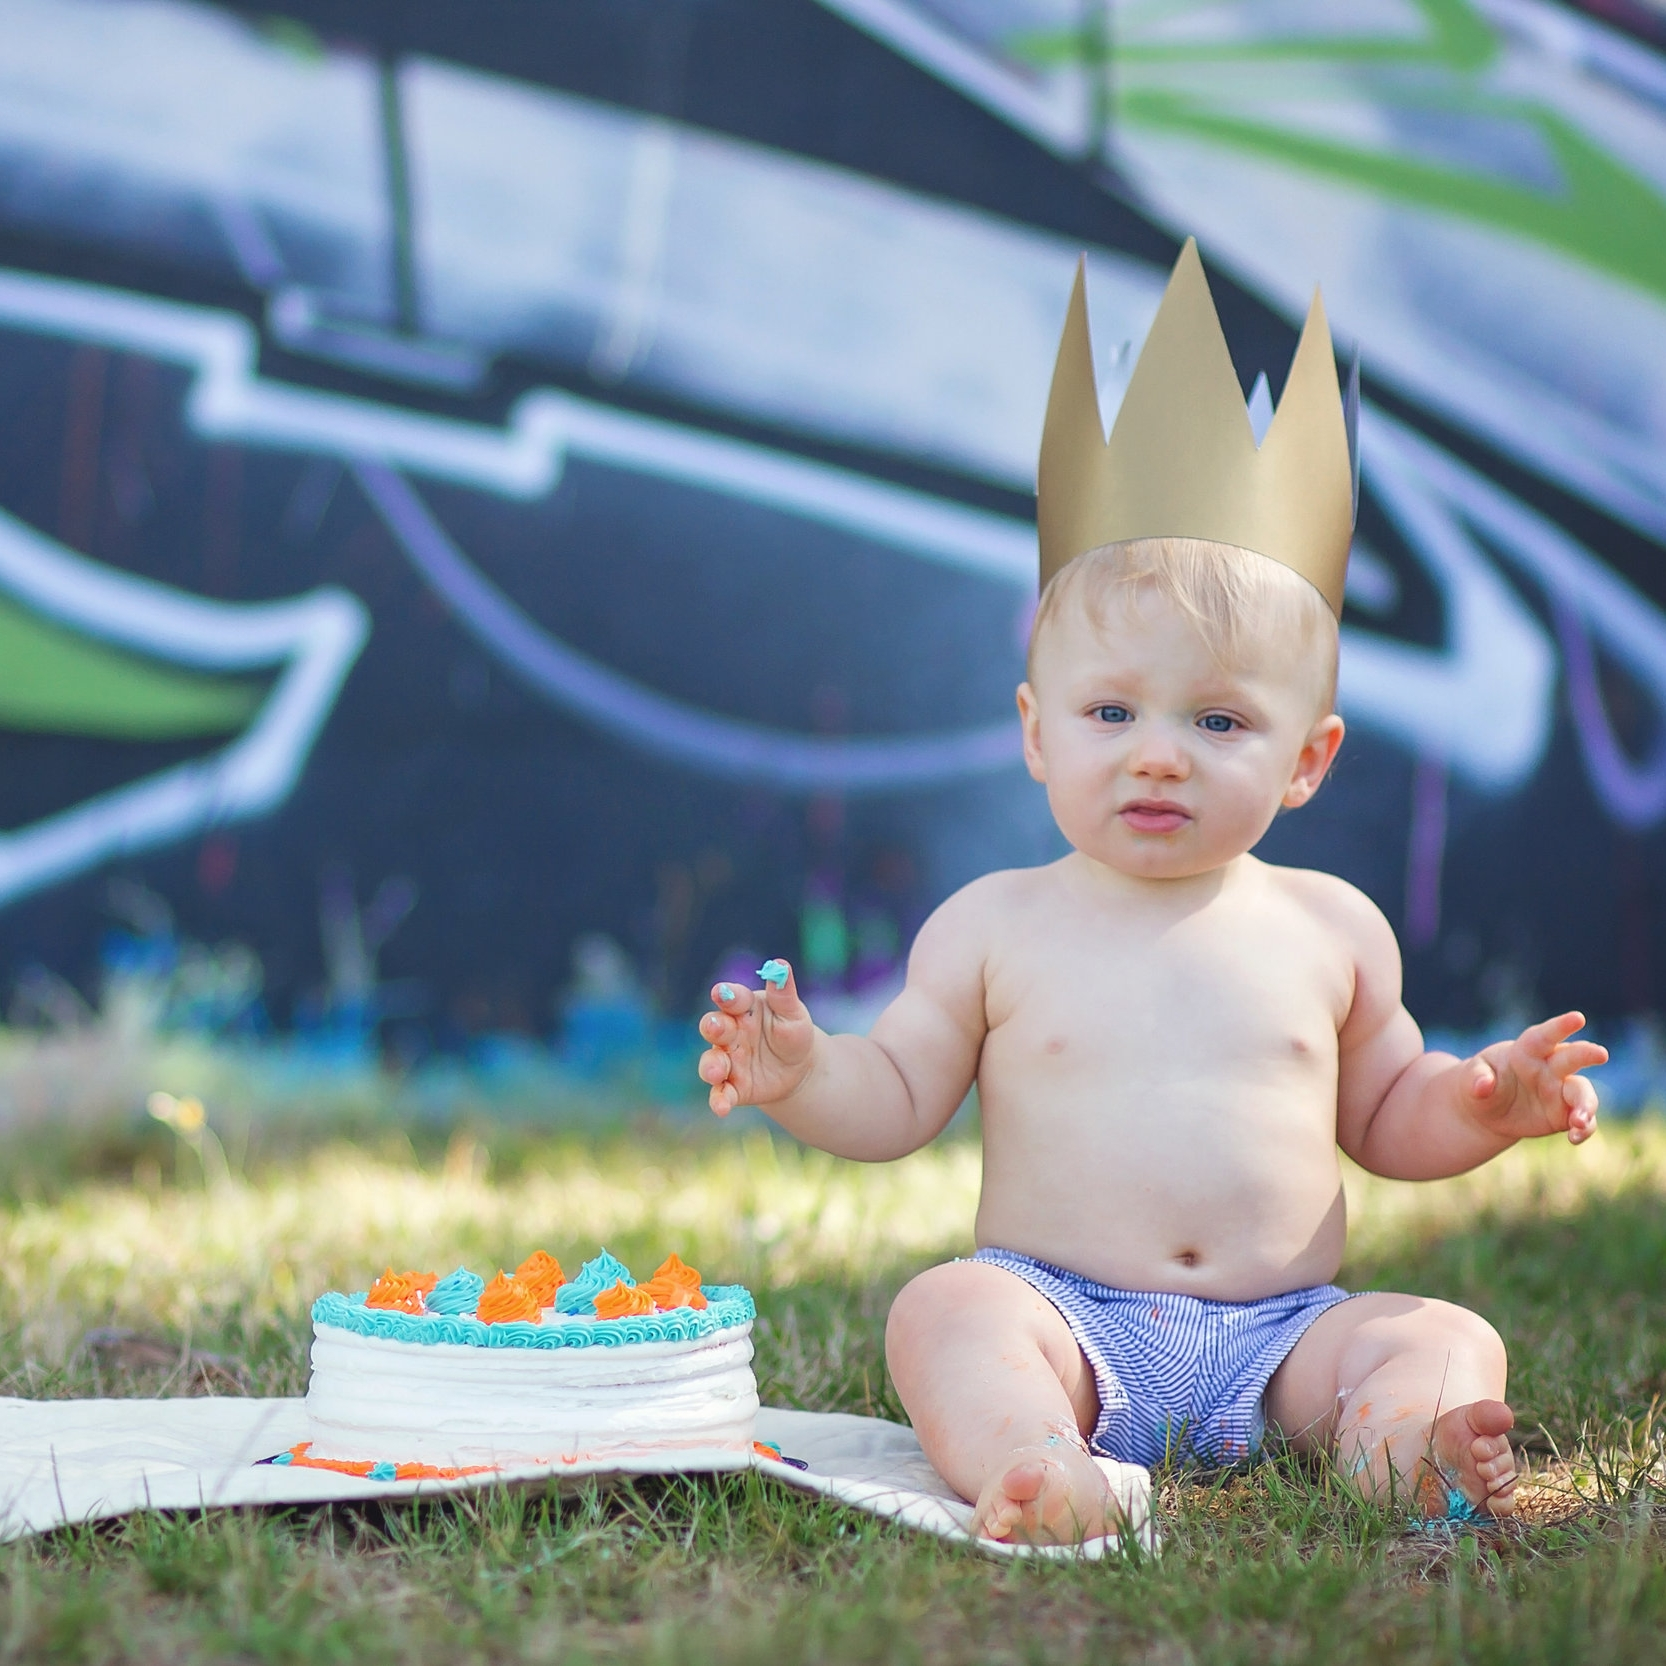 powell river baby photographer, cake smash, grow with me